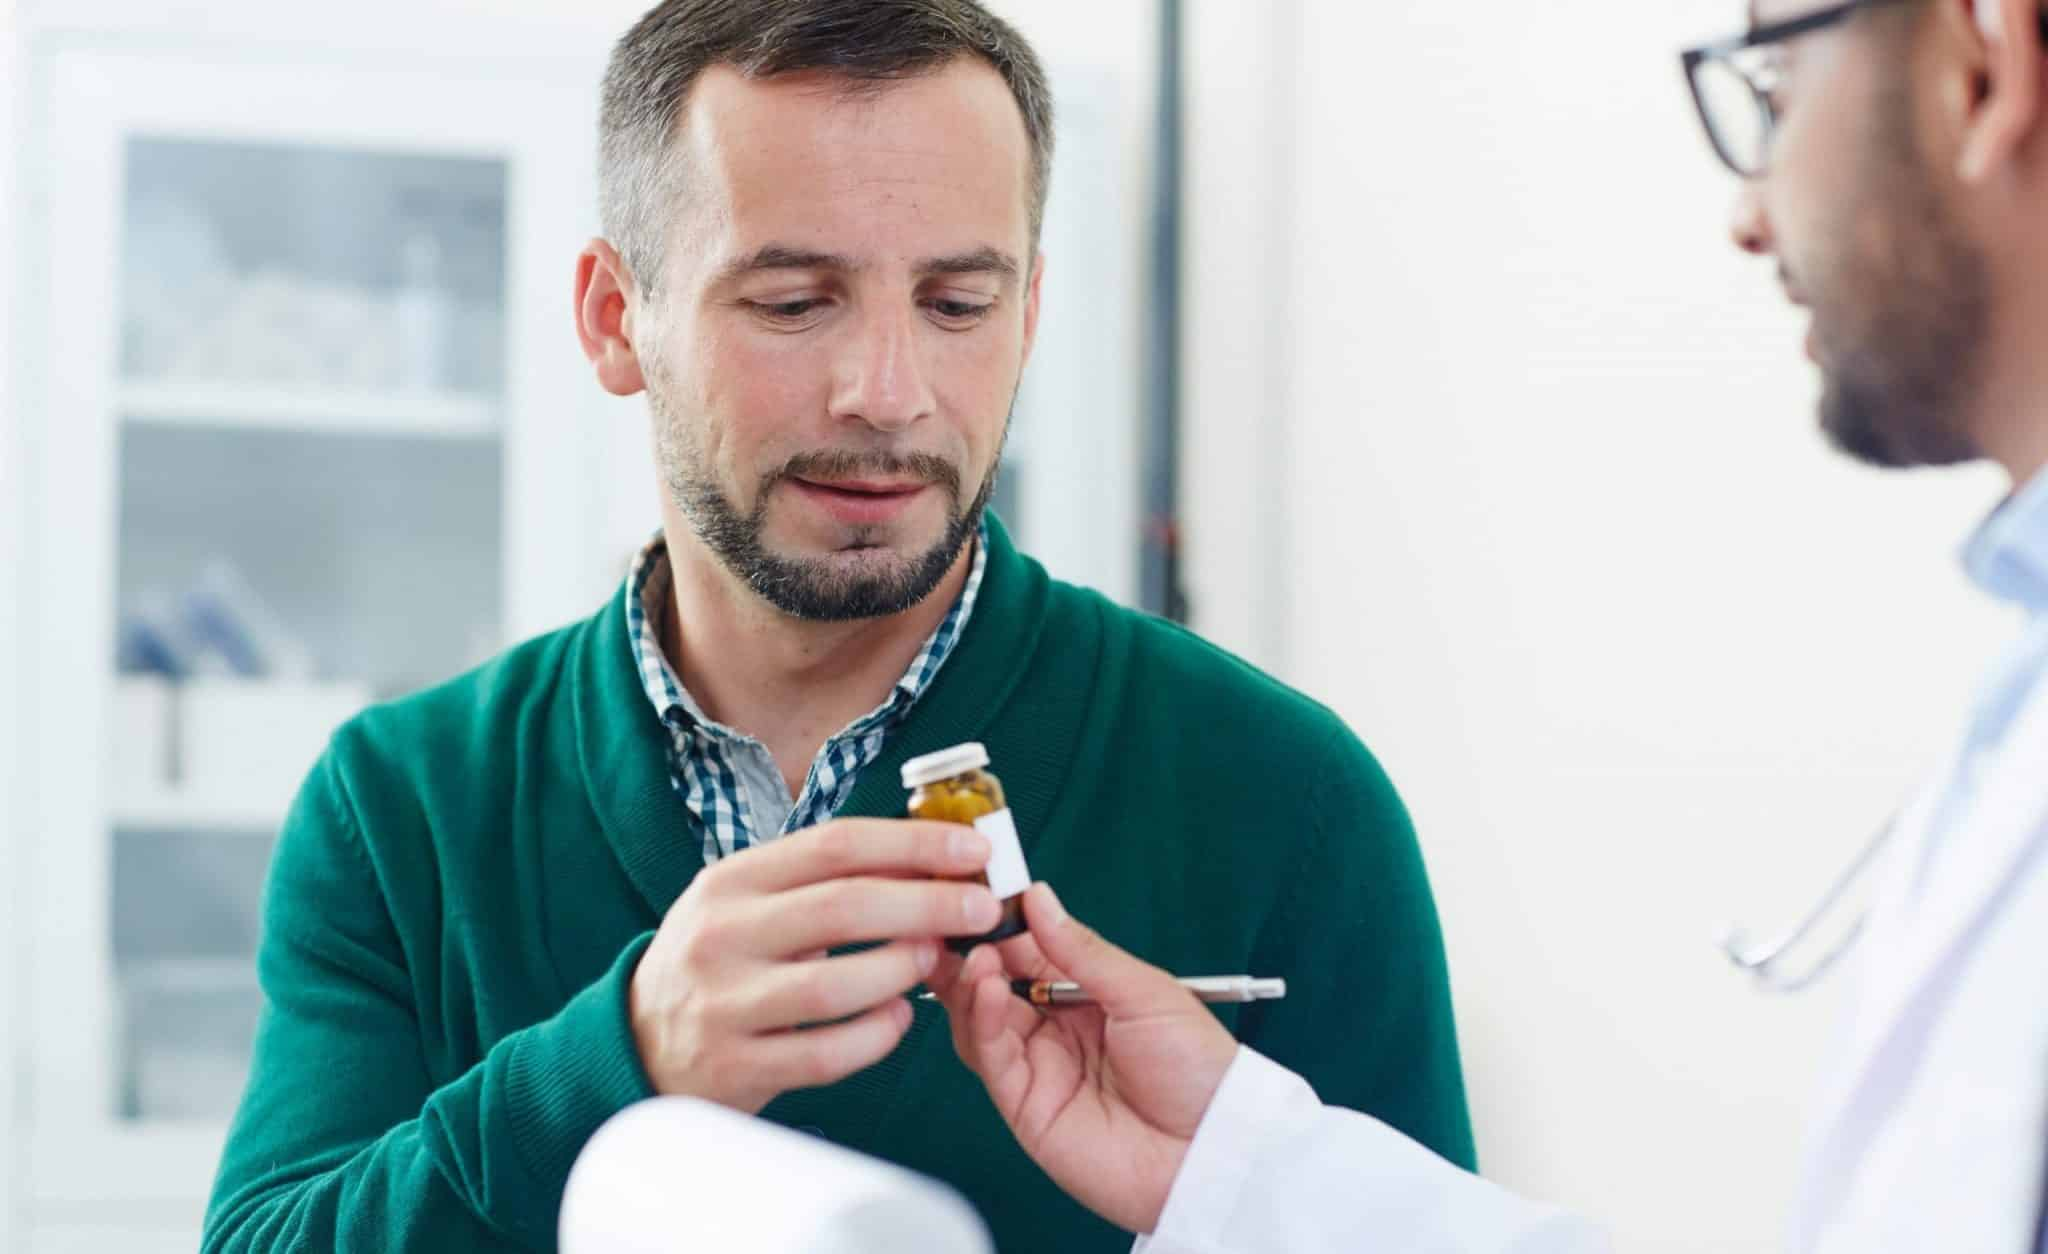 Man consulting with a doctor who is handing him medication